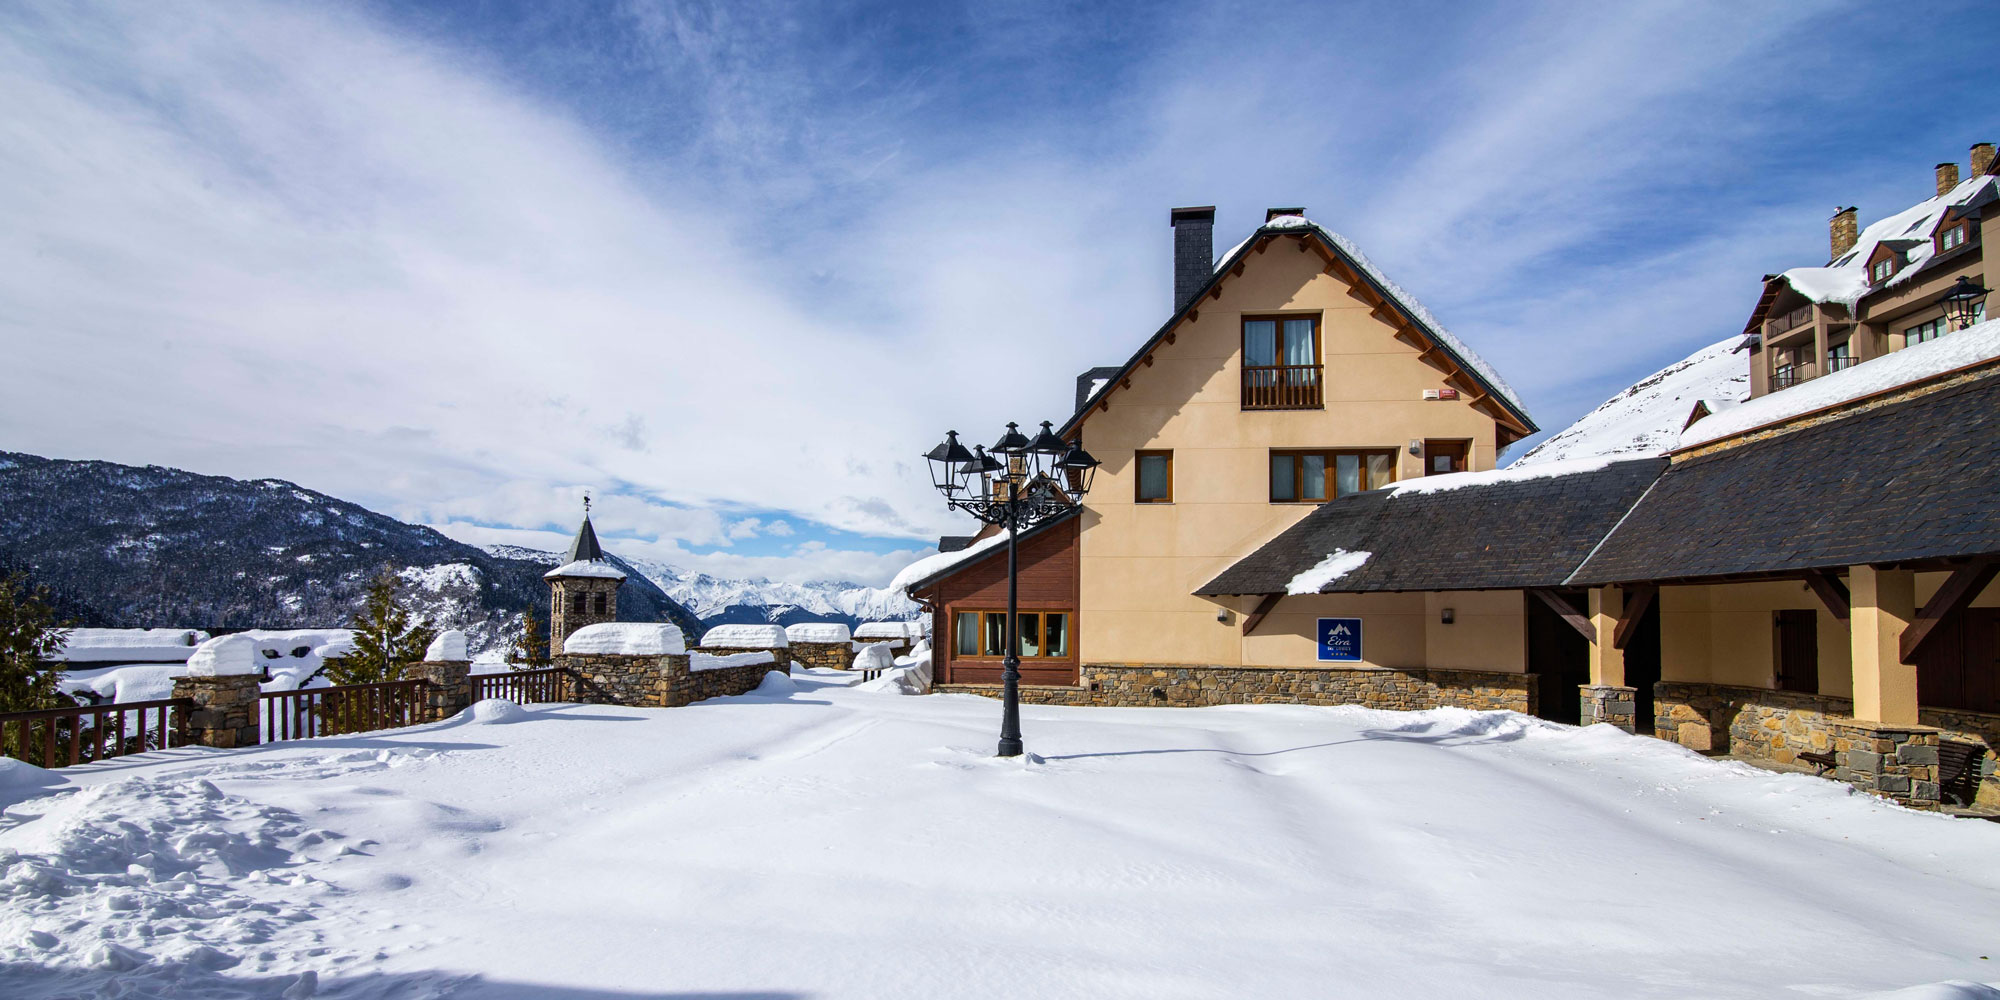 Eira Ski Lodge in snow